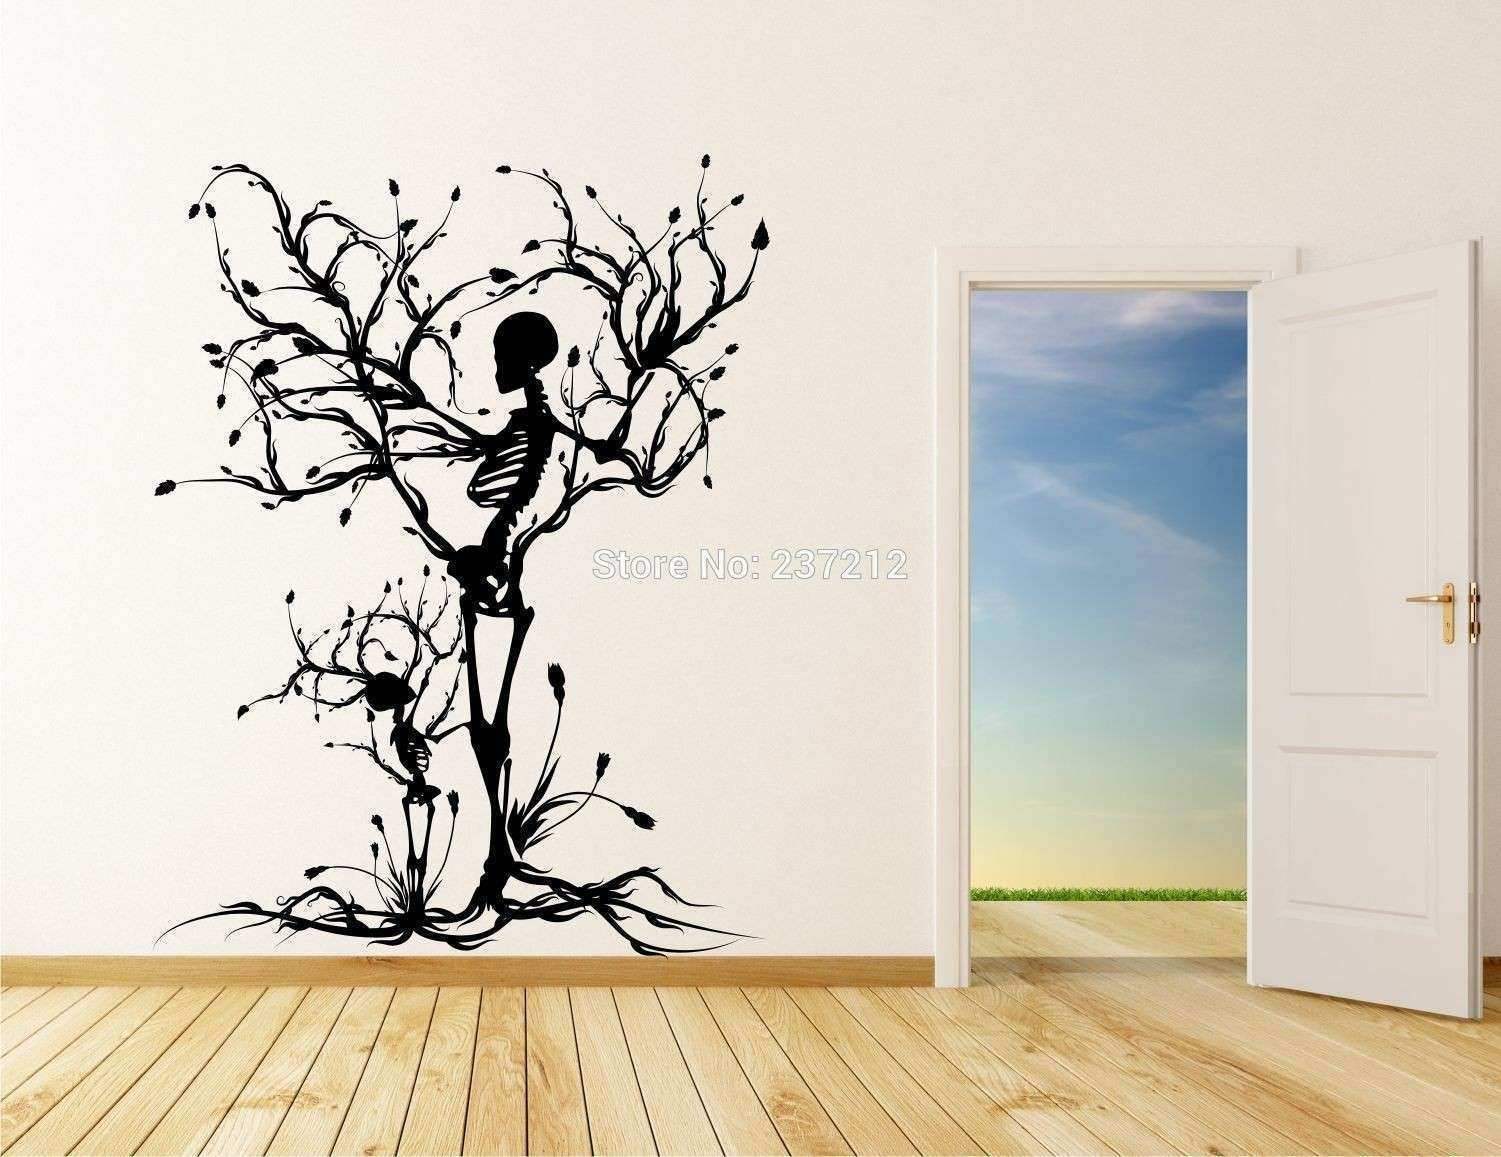 Wall Sticker Art Beautiful Wall Art Designs Vinyl Wall Art Decals Popular Vinyl Tree  sc 1 st  Emily Garrison & Wall Sticker Art Beautiful Wall Art Designs Vinyl Wall Art Decals ...